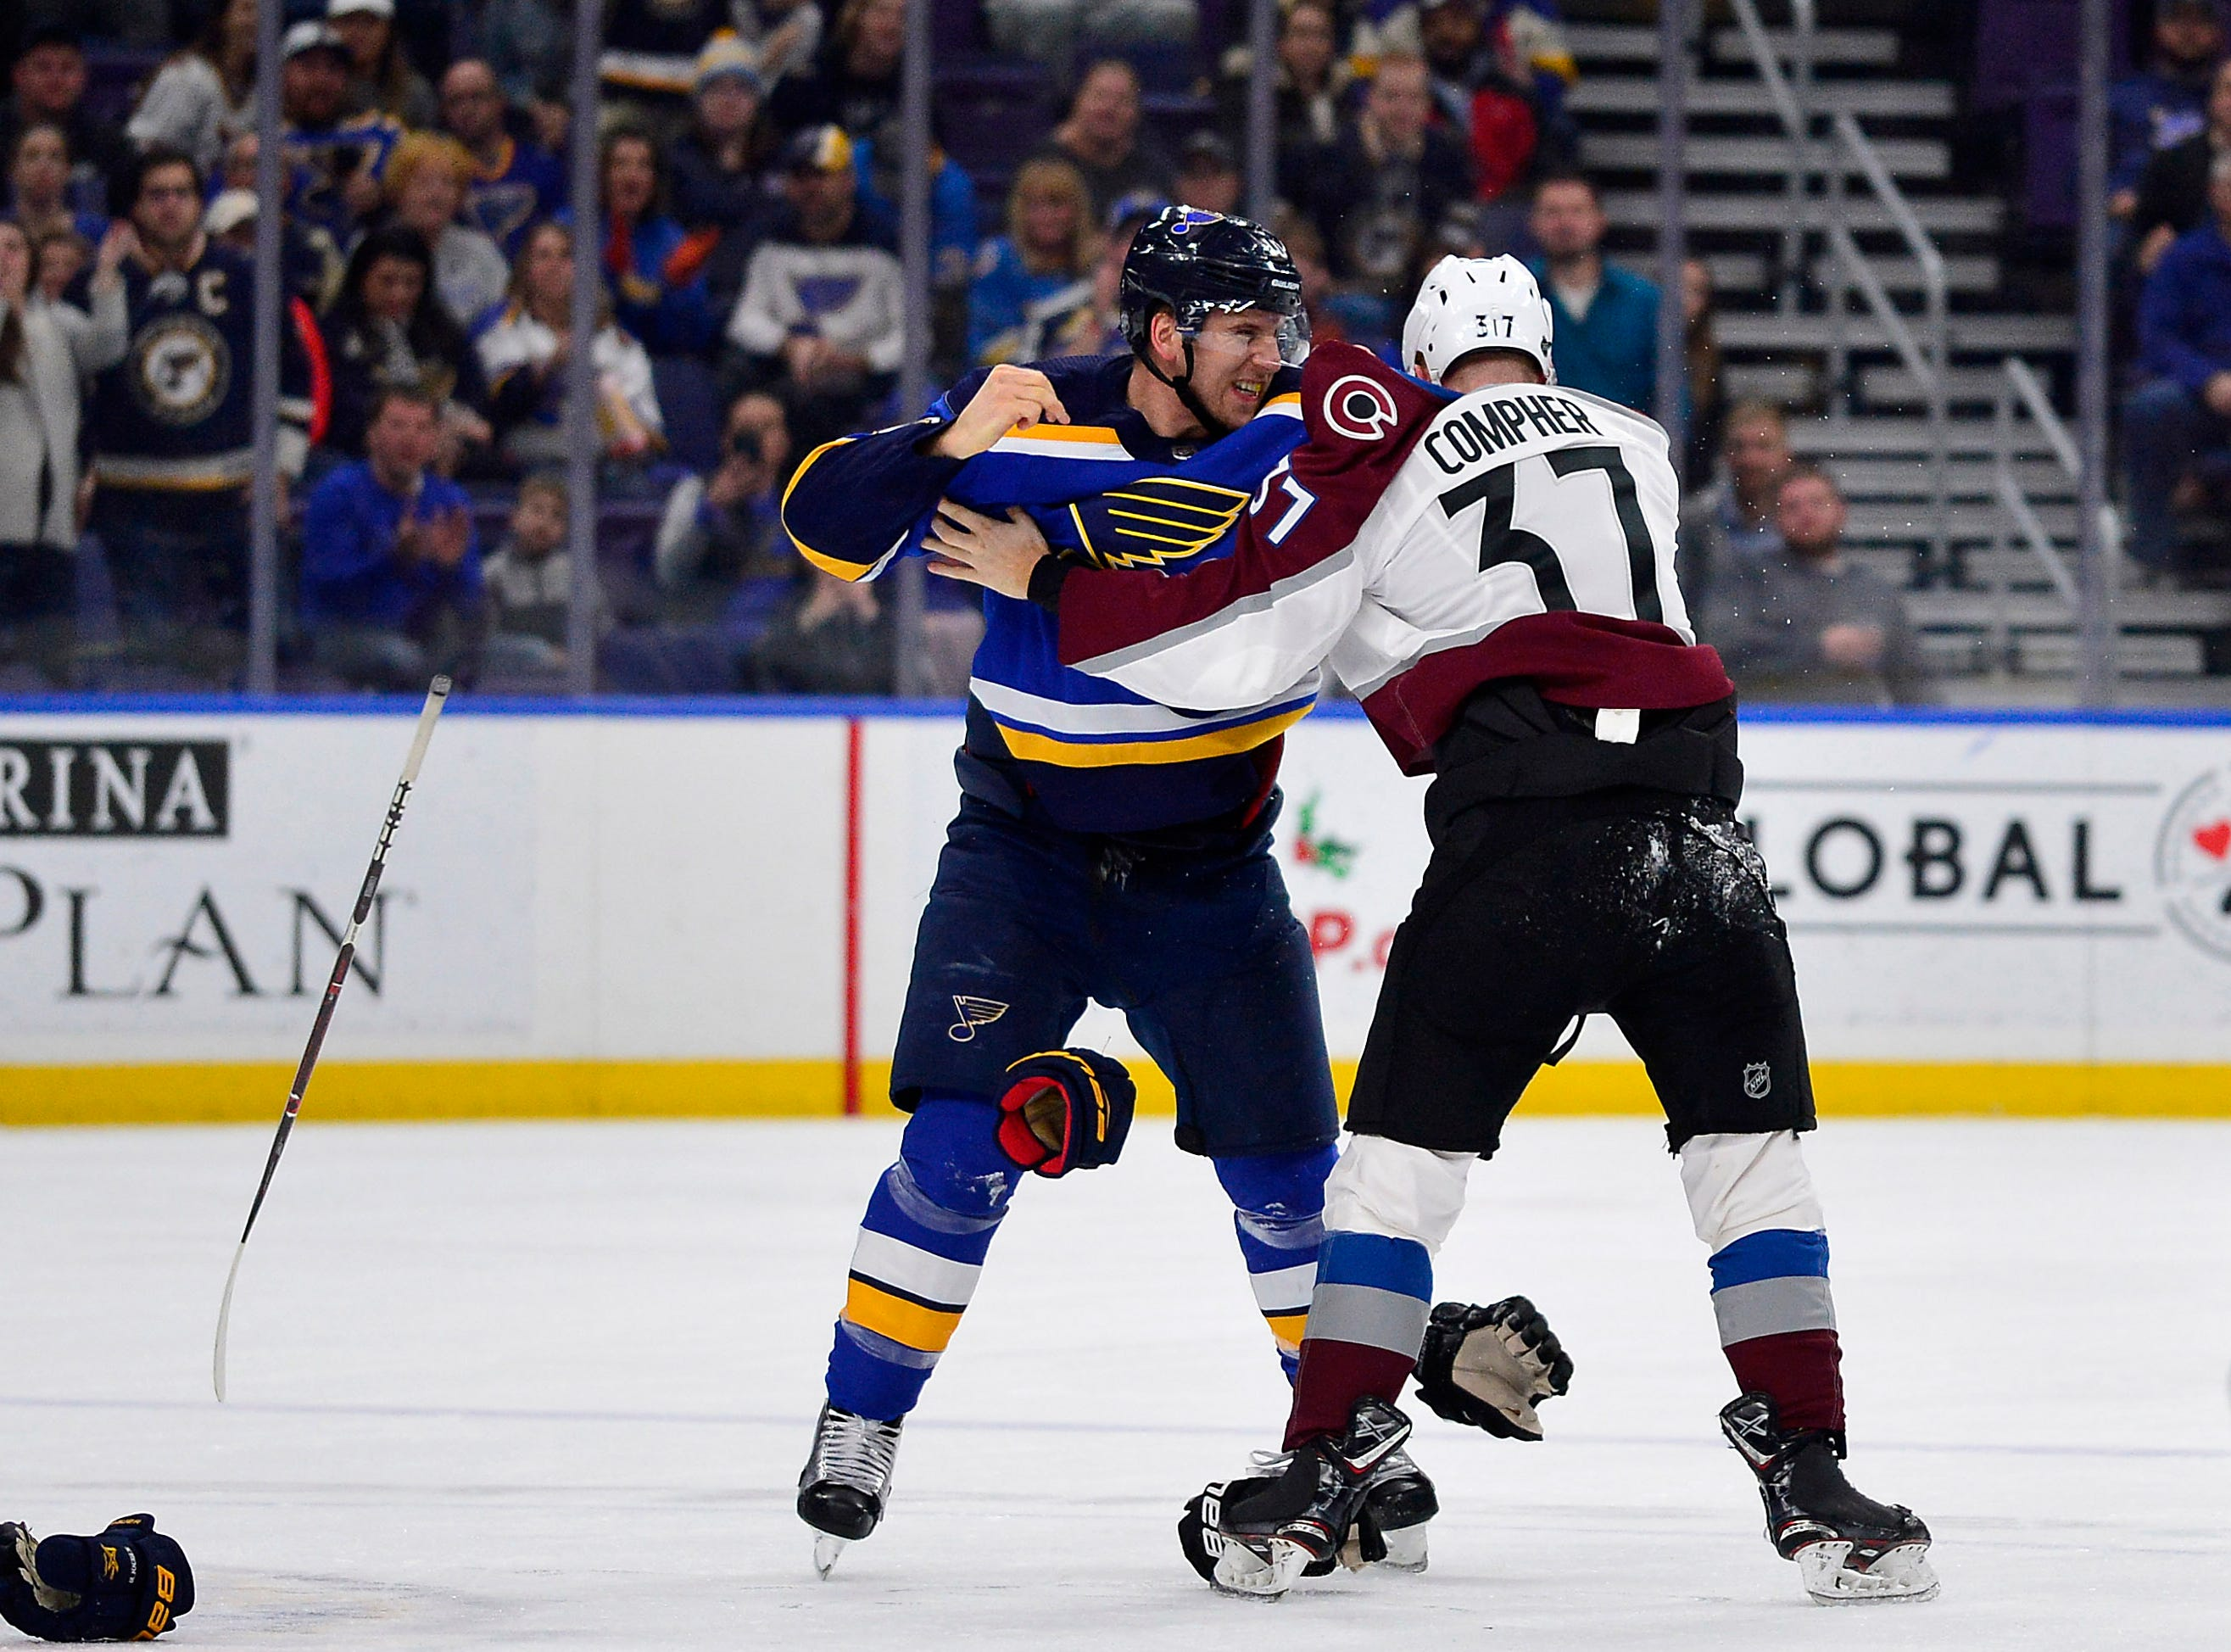 Dec. 14: St. Louis Blues' Brayden Schenn vs. Colorado Avalanche's J.T. Compher.